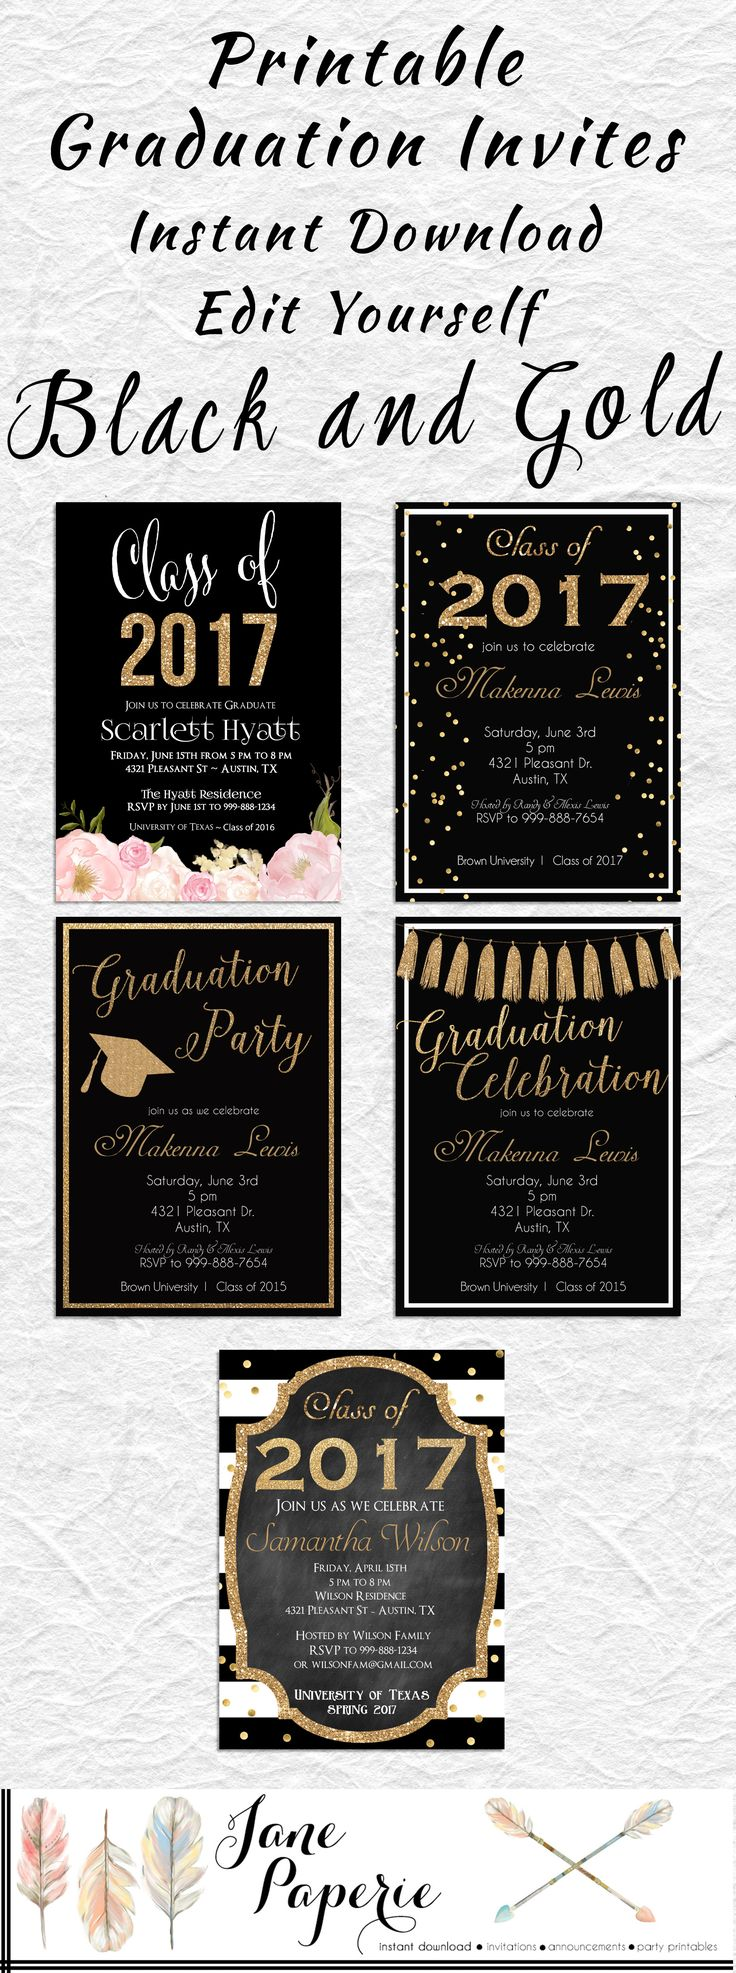 Celebrate your Grad with these gorgeous black and gold floral Printable Graduation Invitations!    INSTANT DOWNLOAD - 2017 Graduation Party Invitation - Floral Graduation - High School Graduation - Class of 2017 - Open House Invitation. Find more coordinating printables at JanePaperie: https://www.etsy.com/shop/JanePaperie